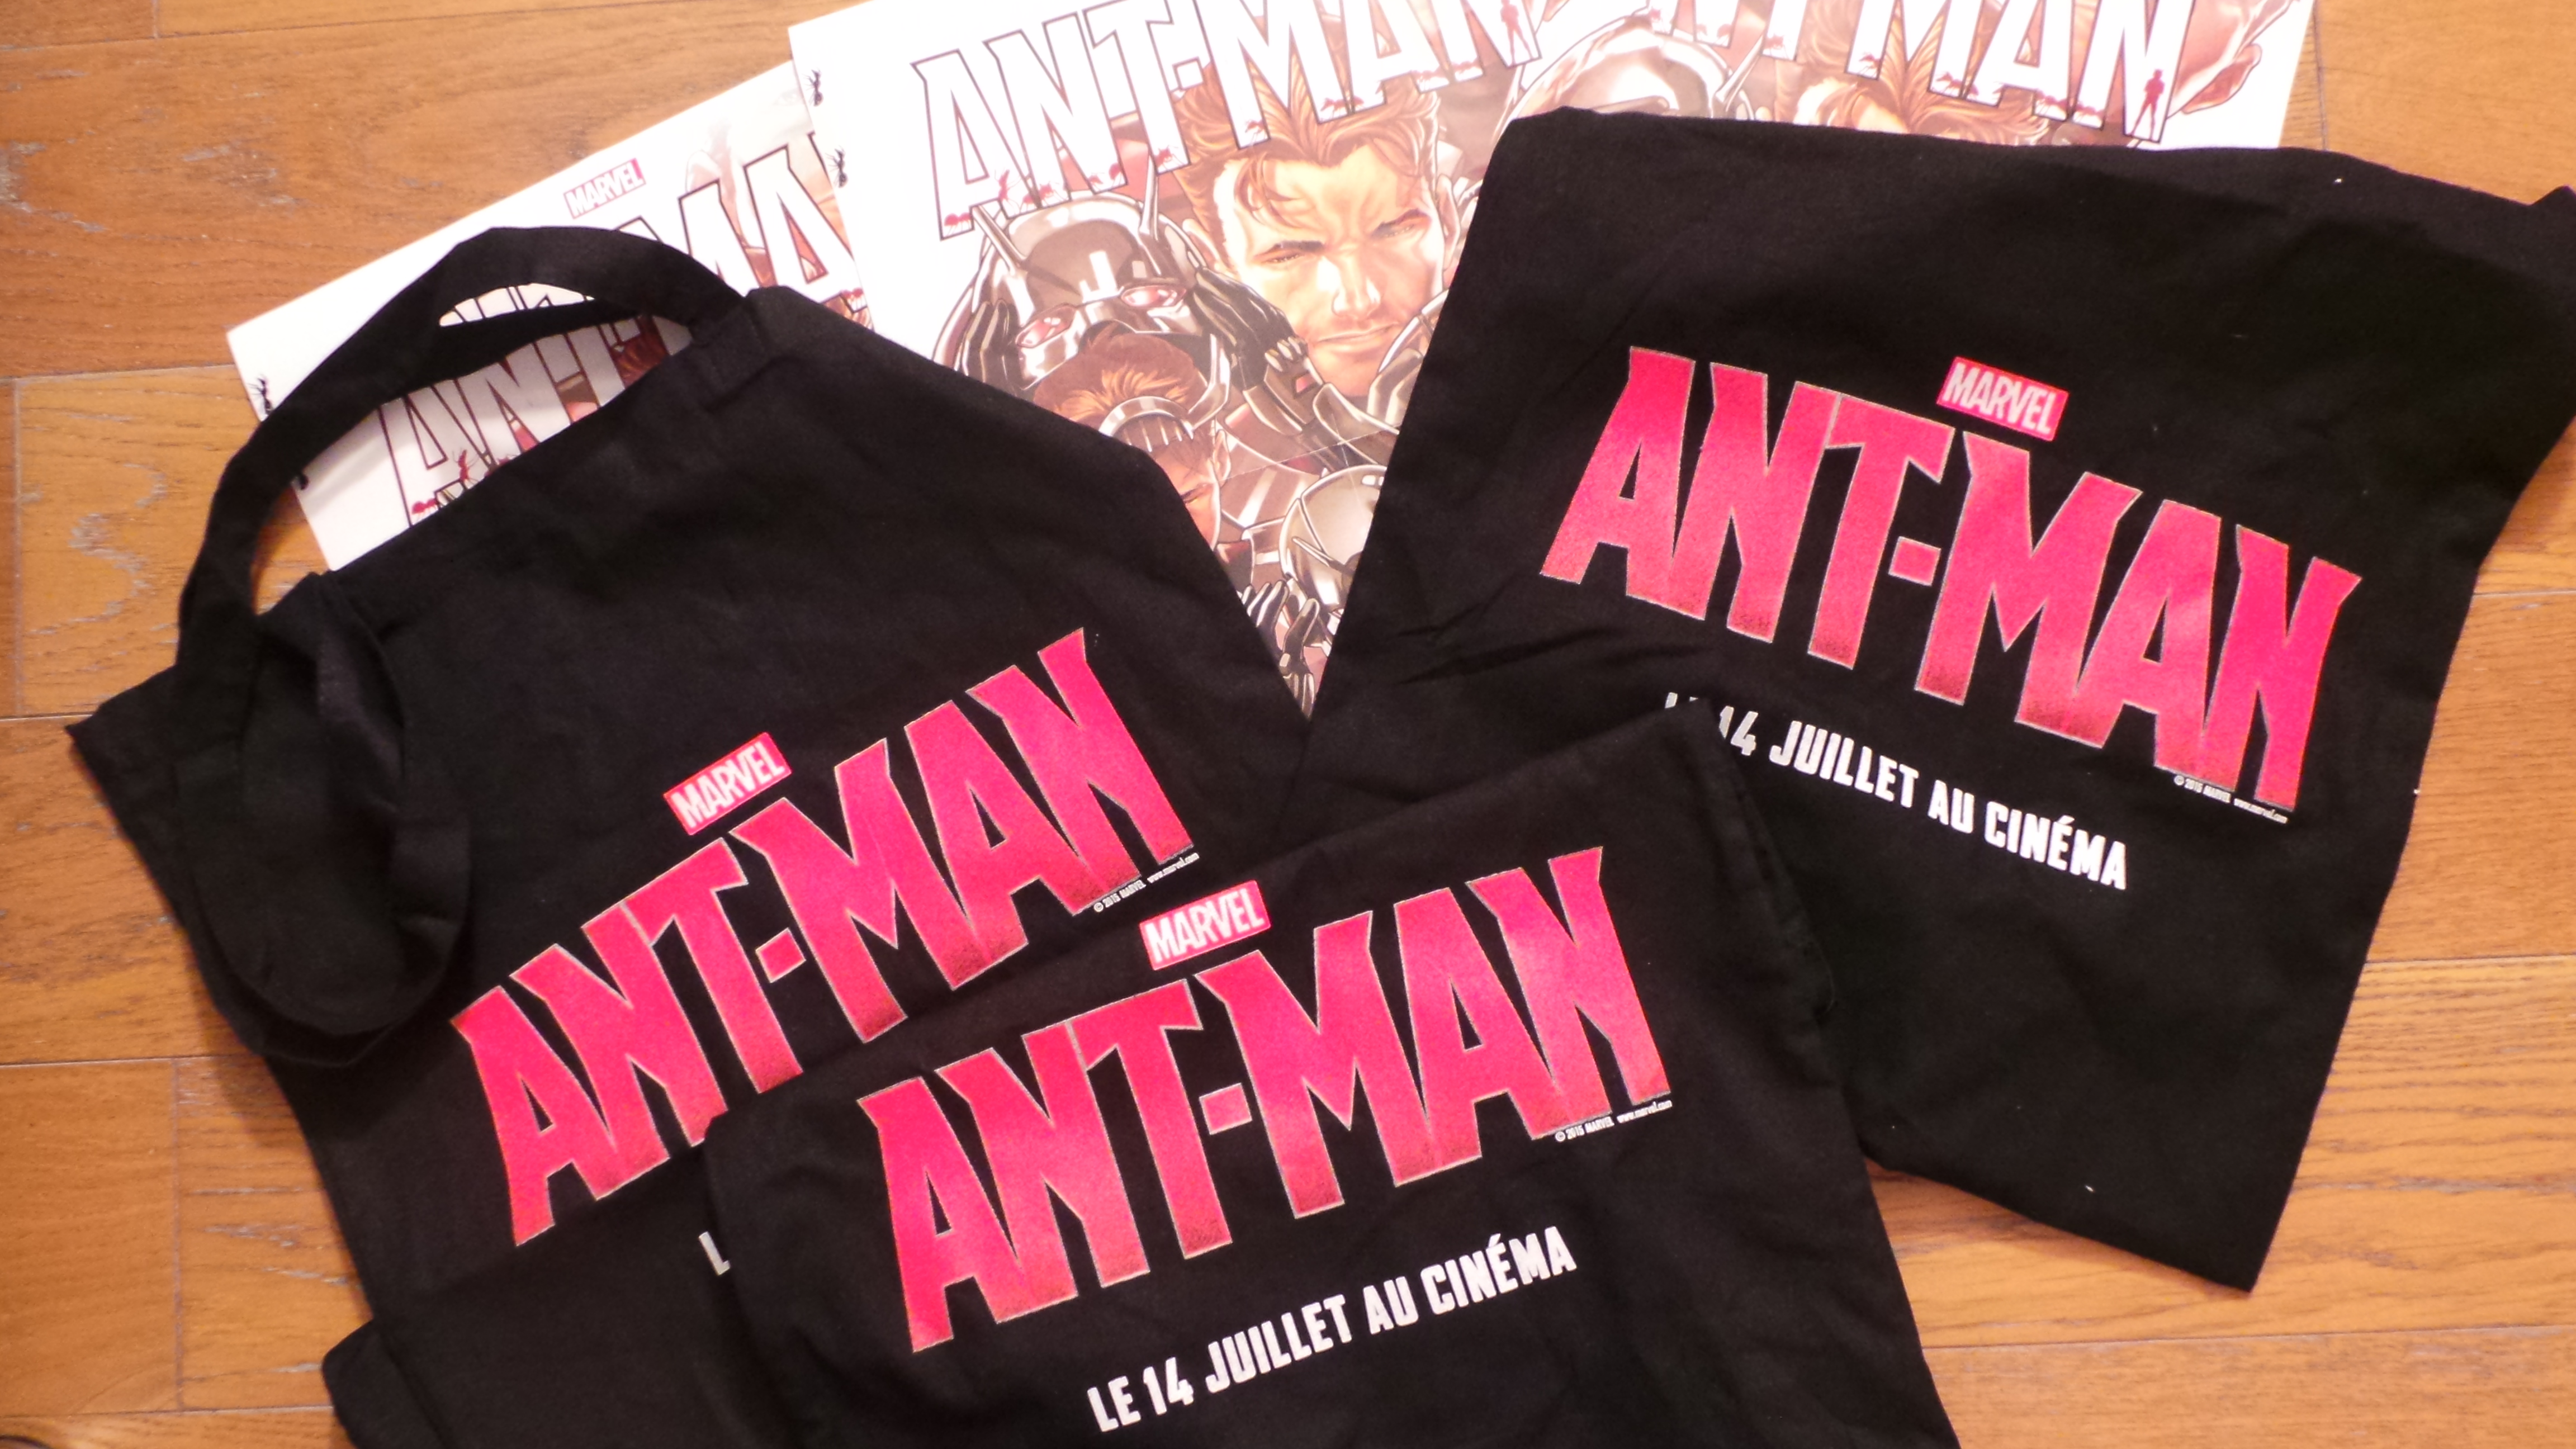 ANT-MAN - Visuel Concours tote bag affiches à gagner 3 - copyright Go with the Blog